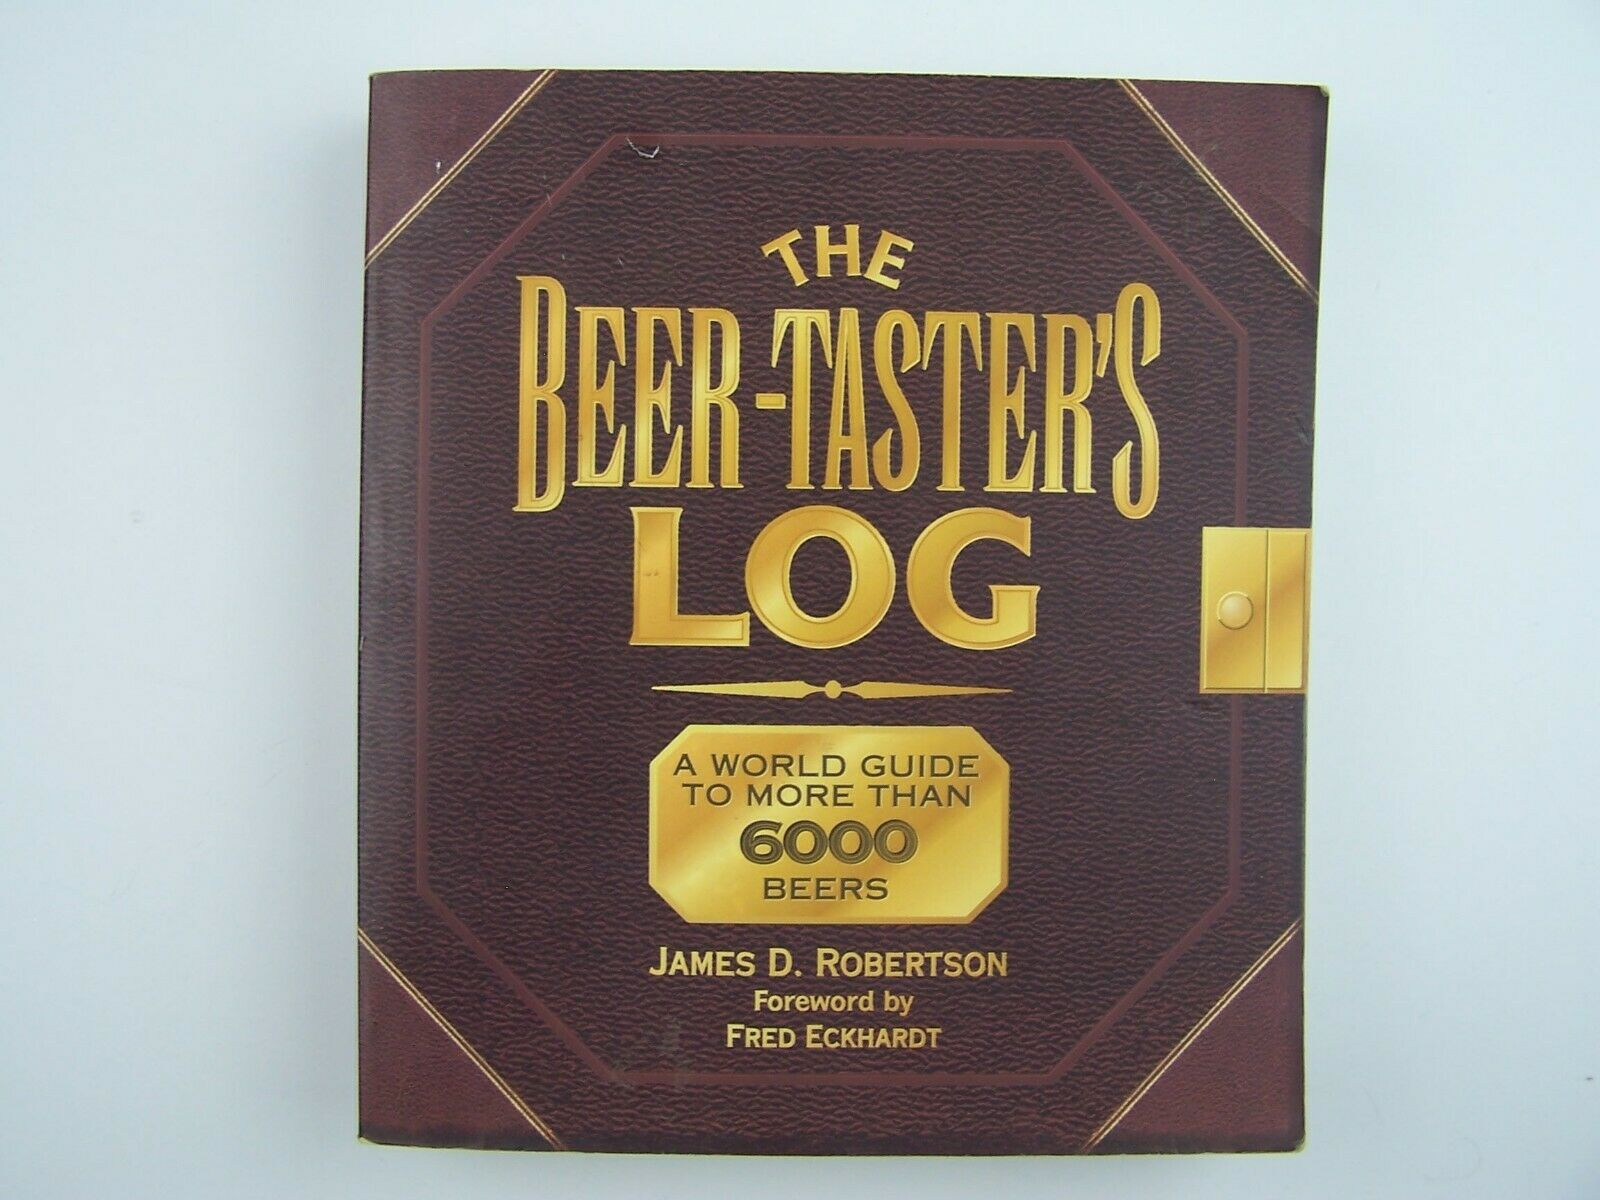 The Beer-Taster's Log: A World Guide to More Than 6000